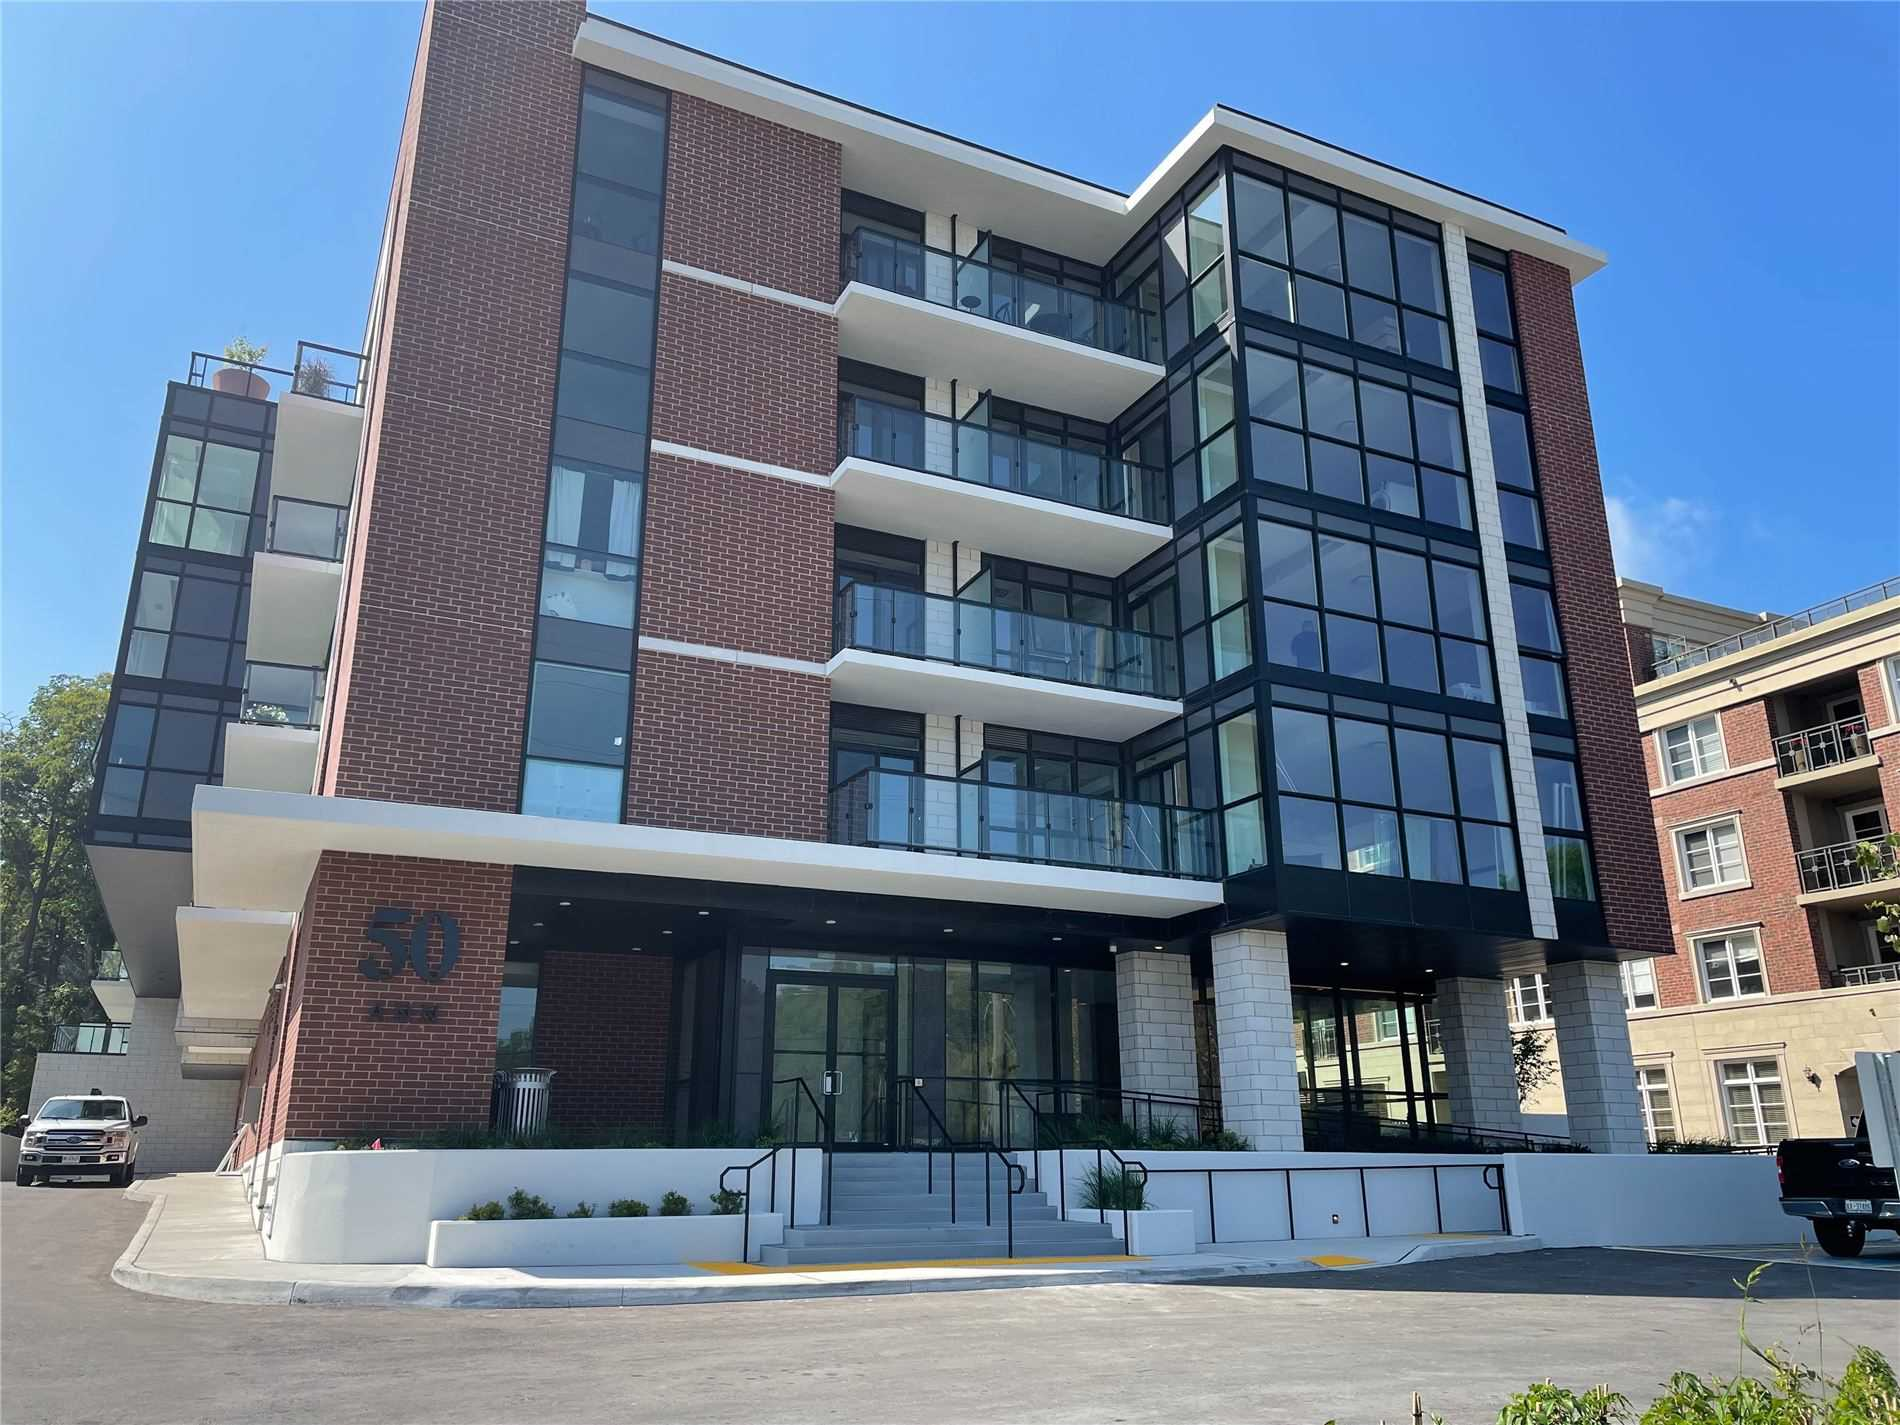 Condo Apt For Lease In Caledon , 2 Bedrooms Bedrooms, ,2 BathroomsBathrooms,Condo Apt,For Lease,206,Ann